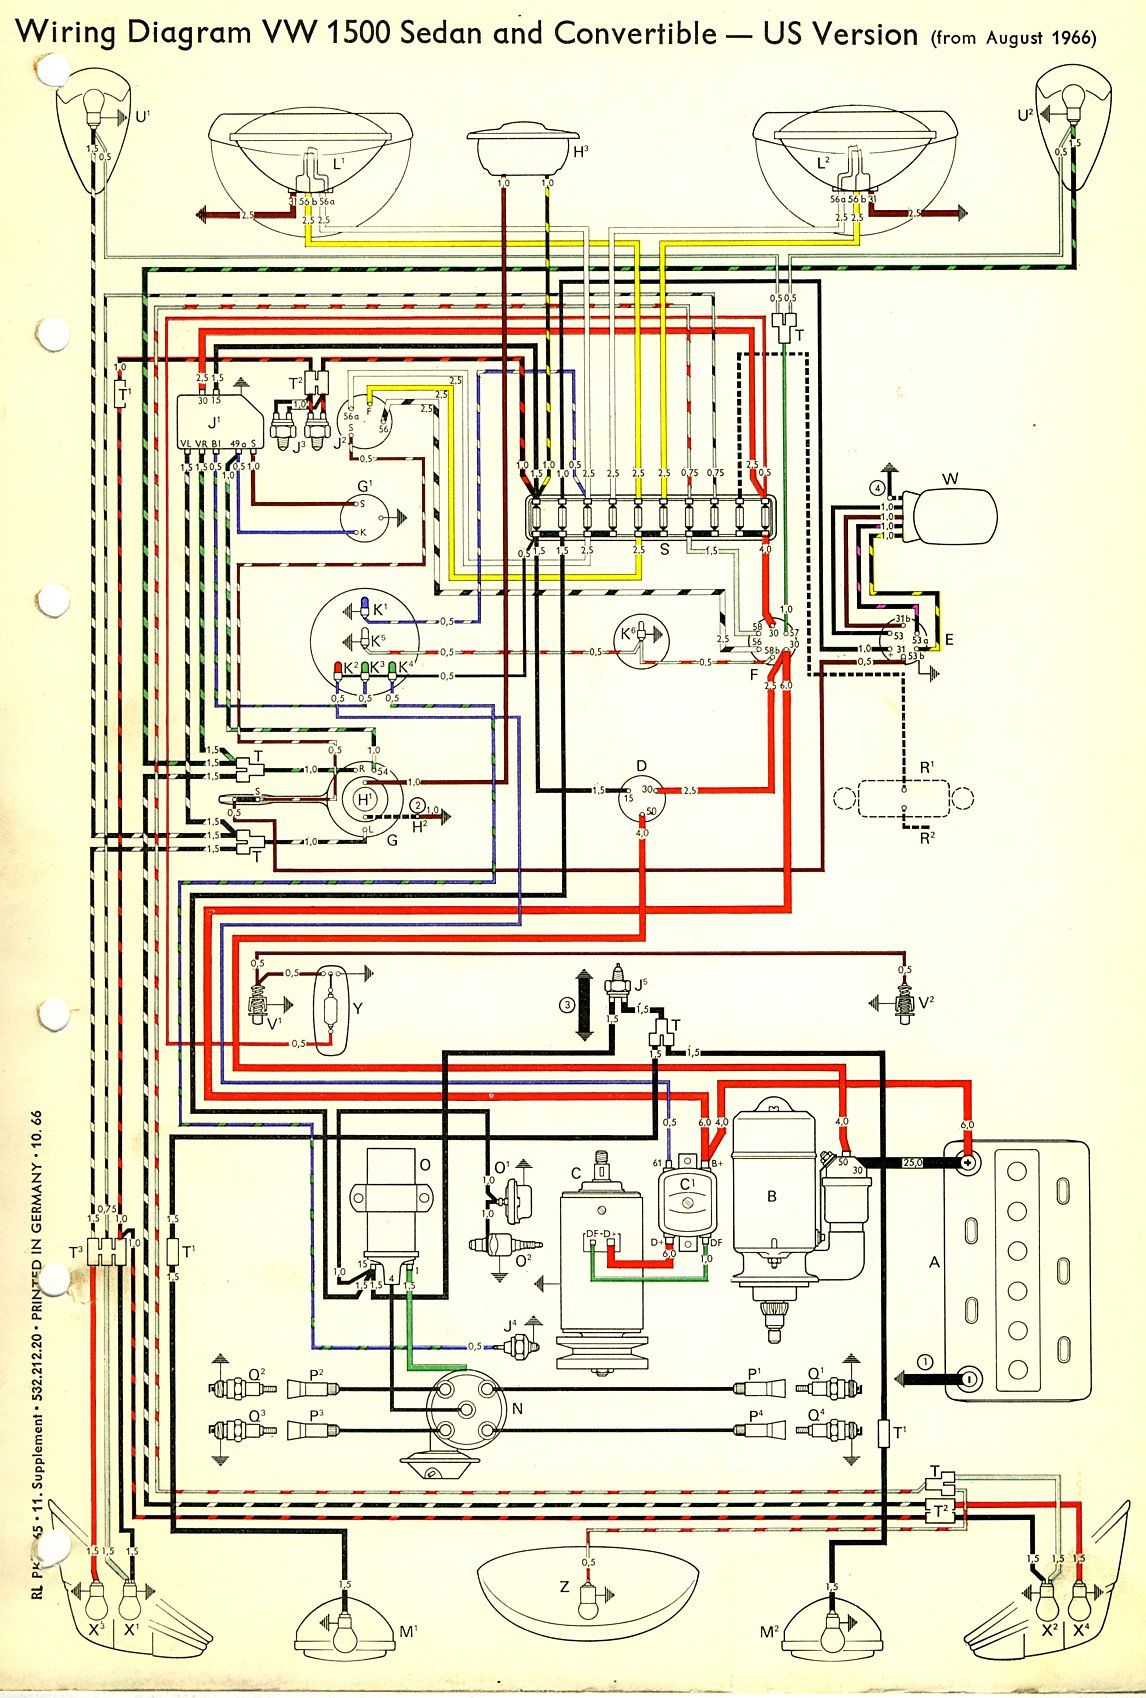 small resolution of 1967 beetle wiring diagram usa thegoldenbug com